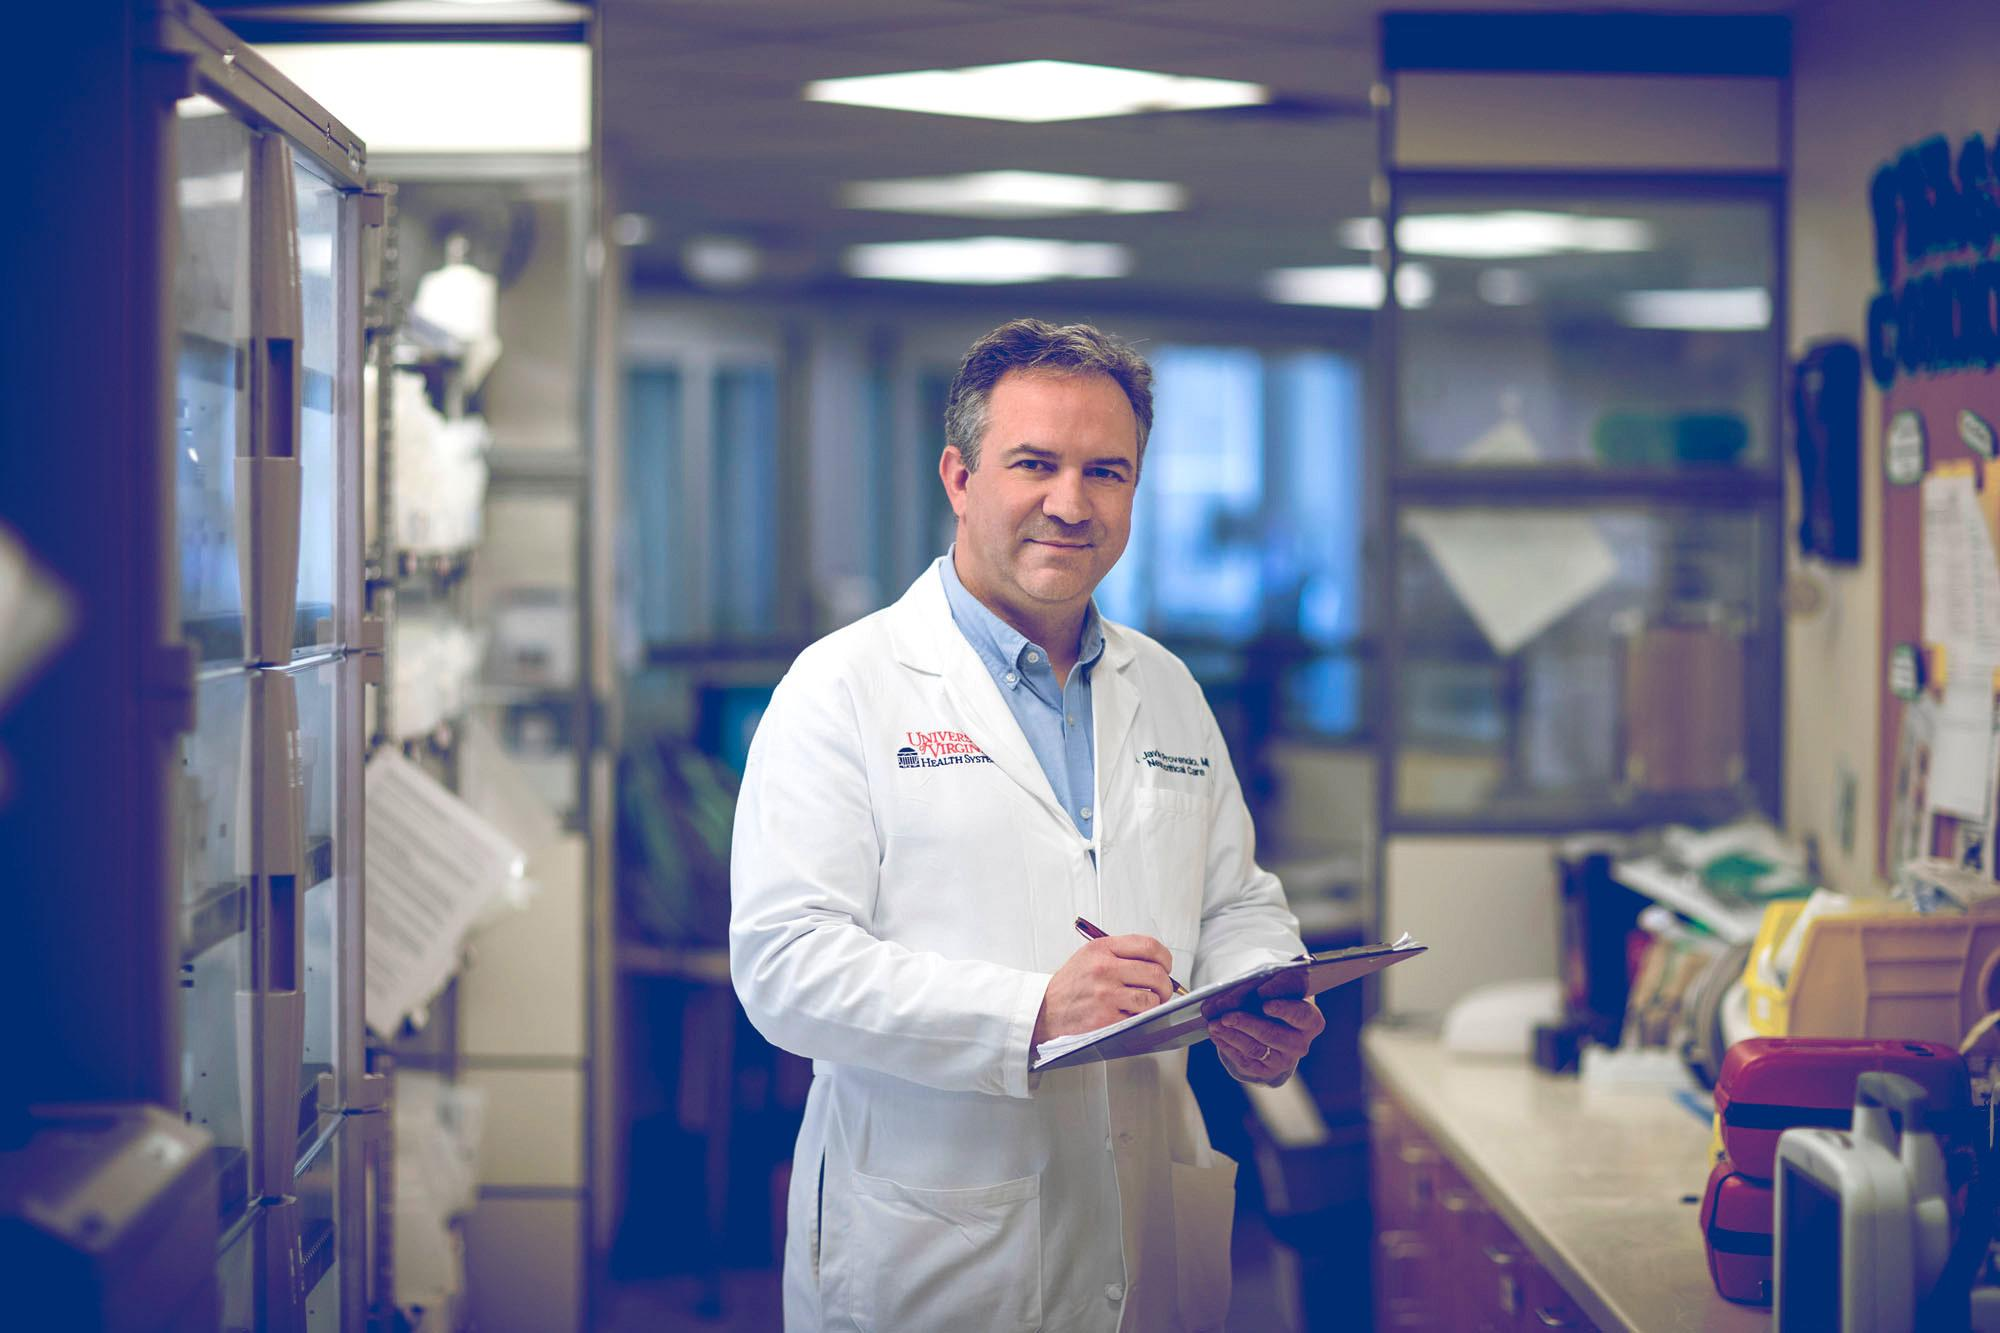 Dr. Javier Provencio is an associate professor in the University of Virginia's School of Medicine and director of UVA's Nerancy Neuroscience Intensive Care Unit.